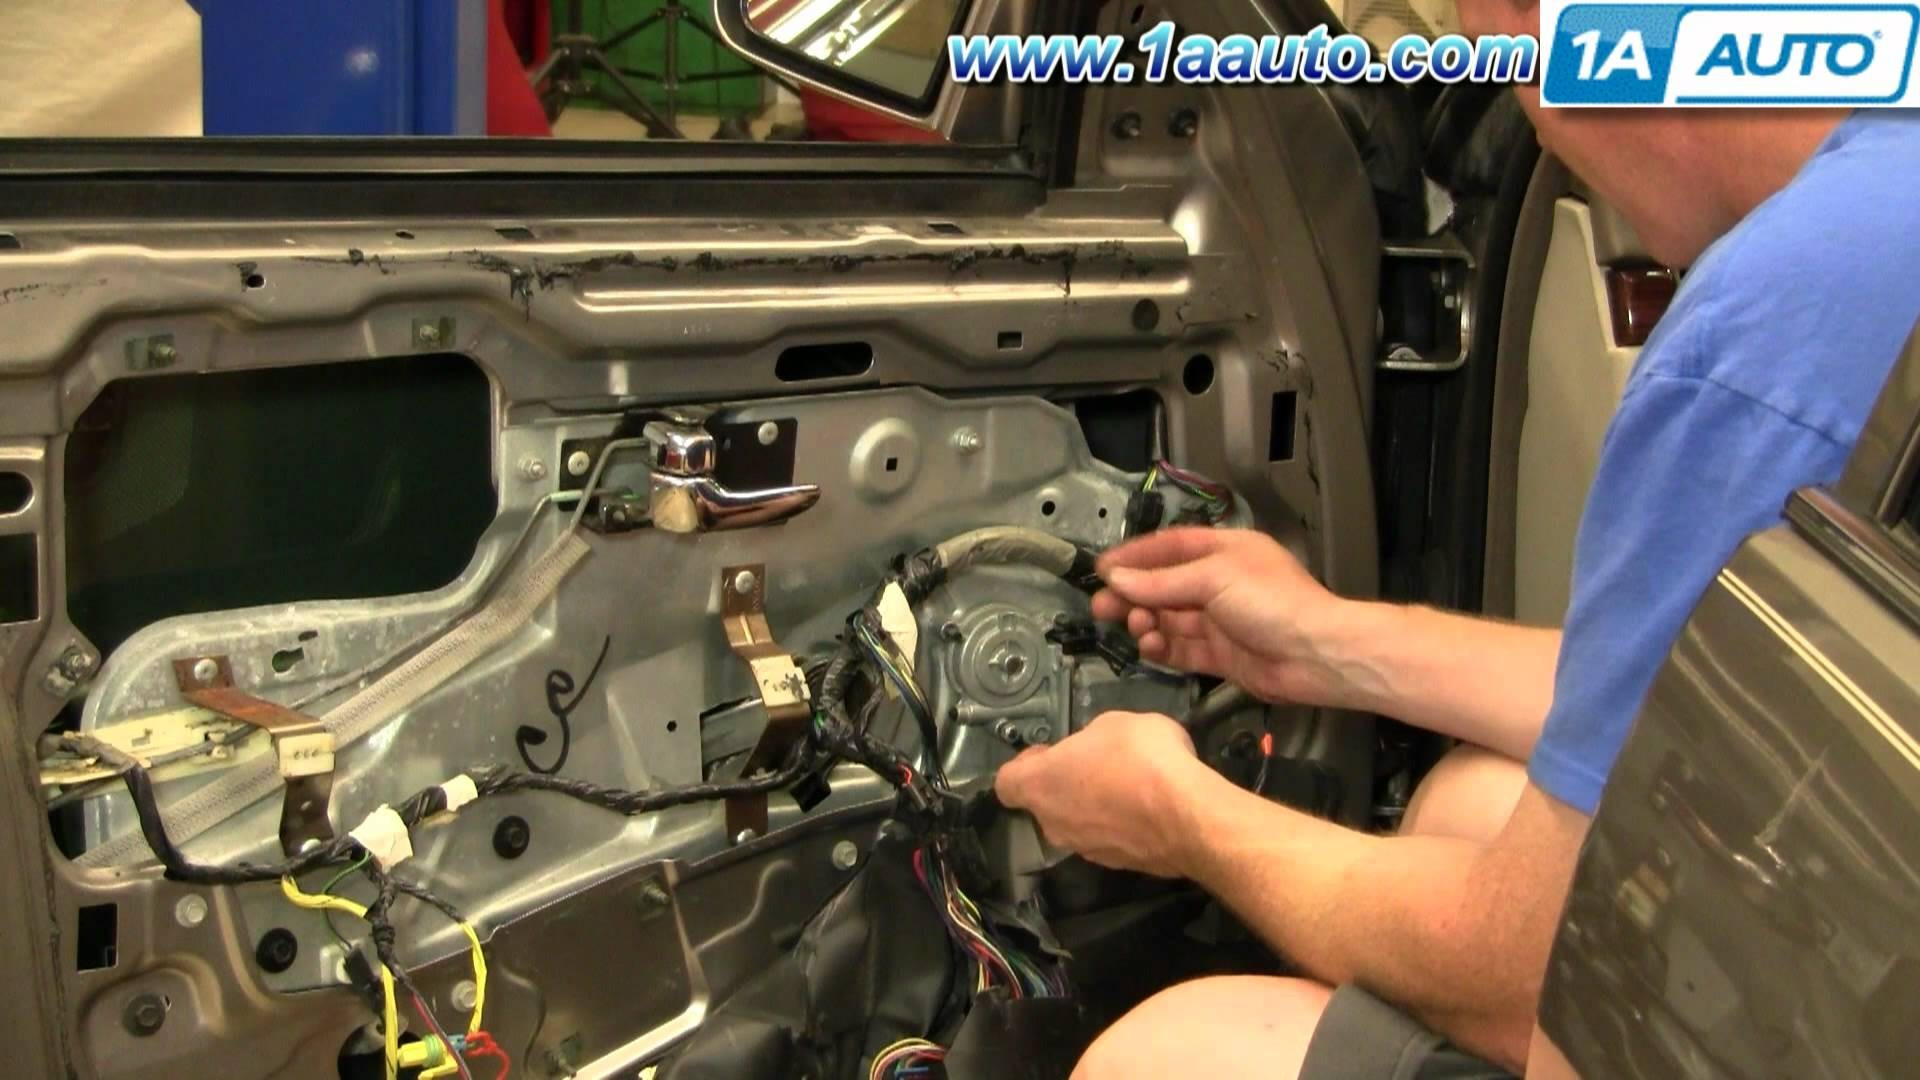 1994 Cadillac Deville Engine Diagram Wiring Library 1999 How To Install Replace Power Window Motor Front 94